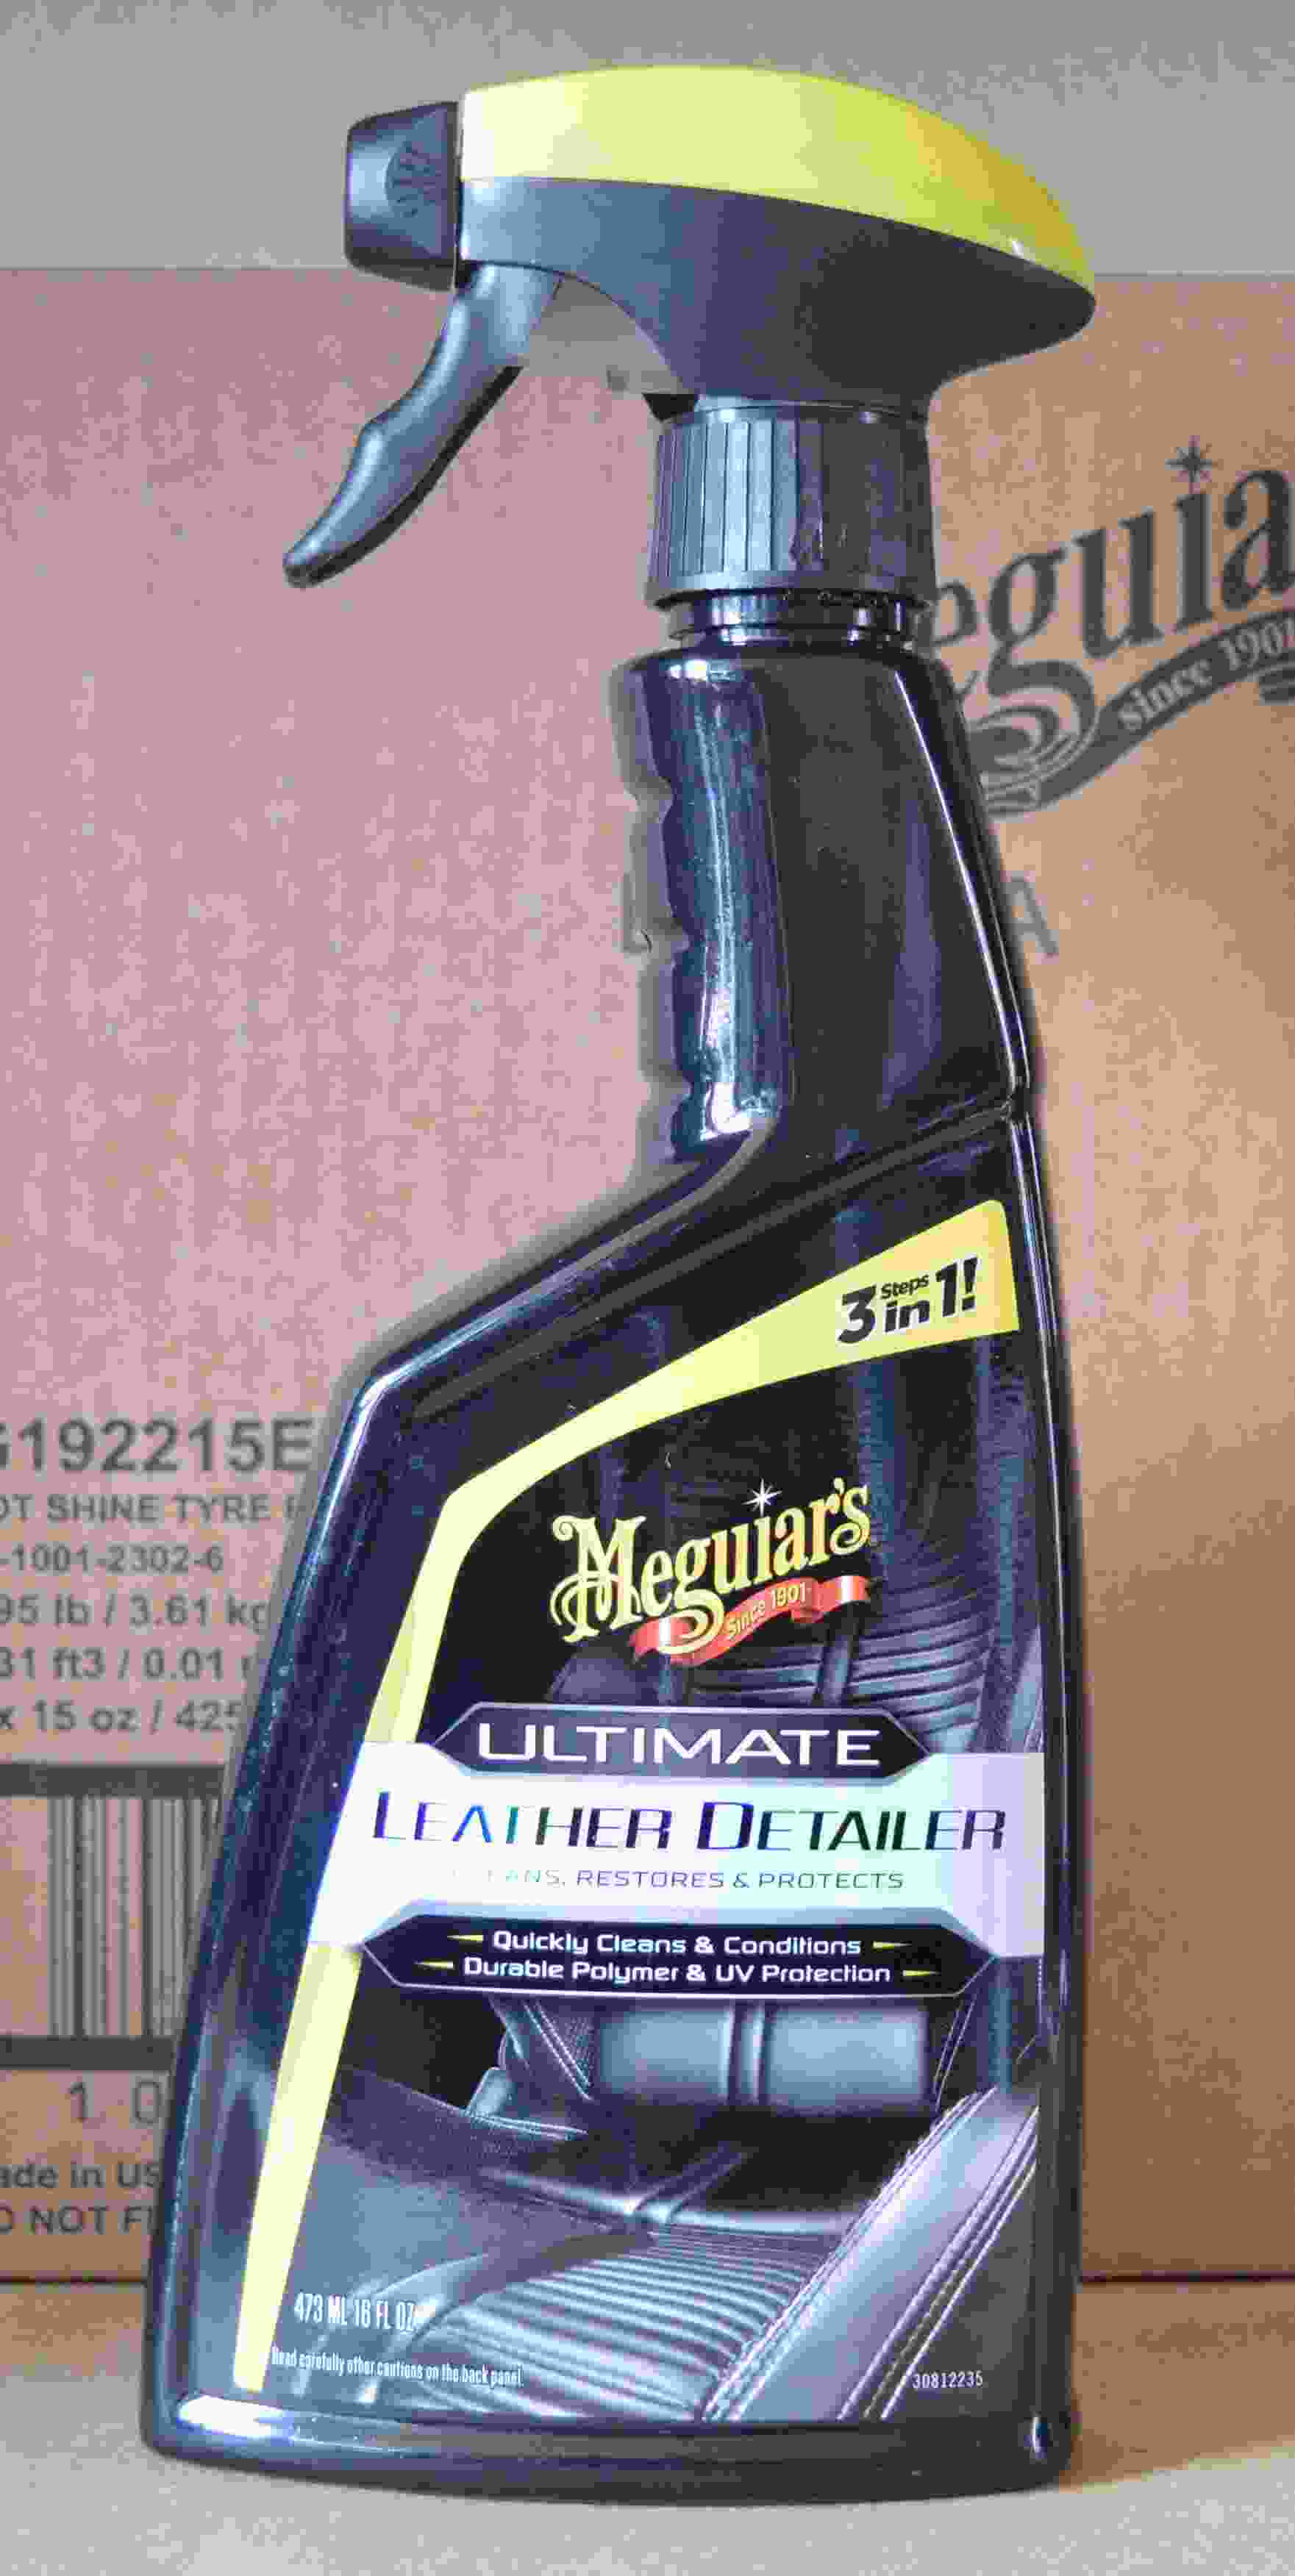 Meguiar's Ultimate Leather Detailer